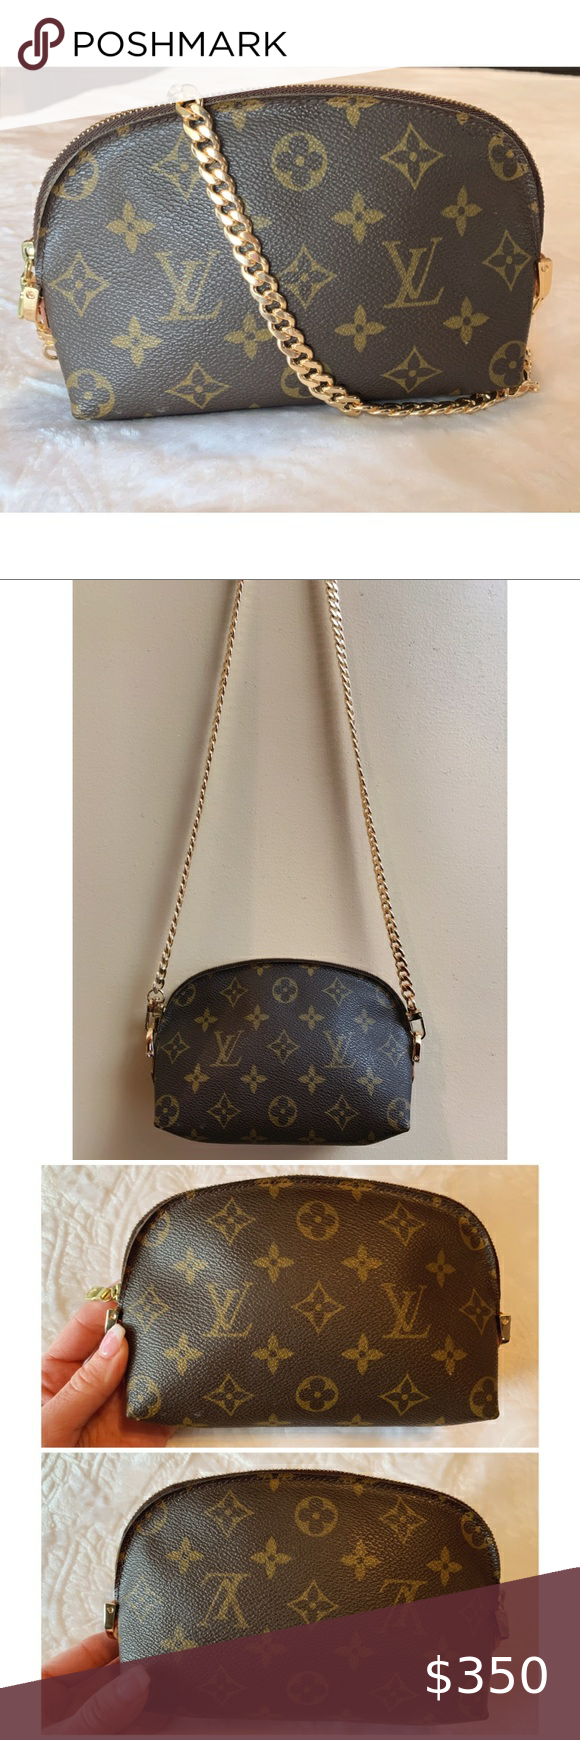 Louis Vuitton Monogram Cometic Pouch Crossbody in 2020